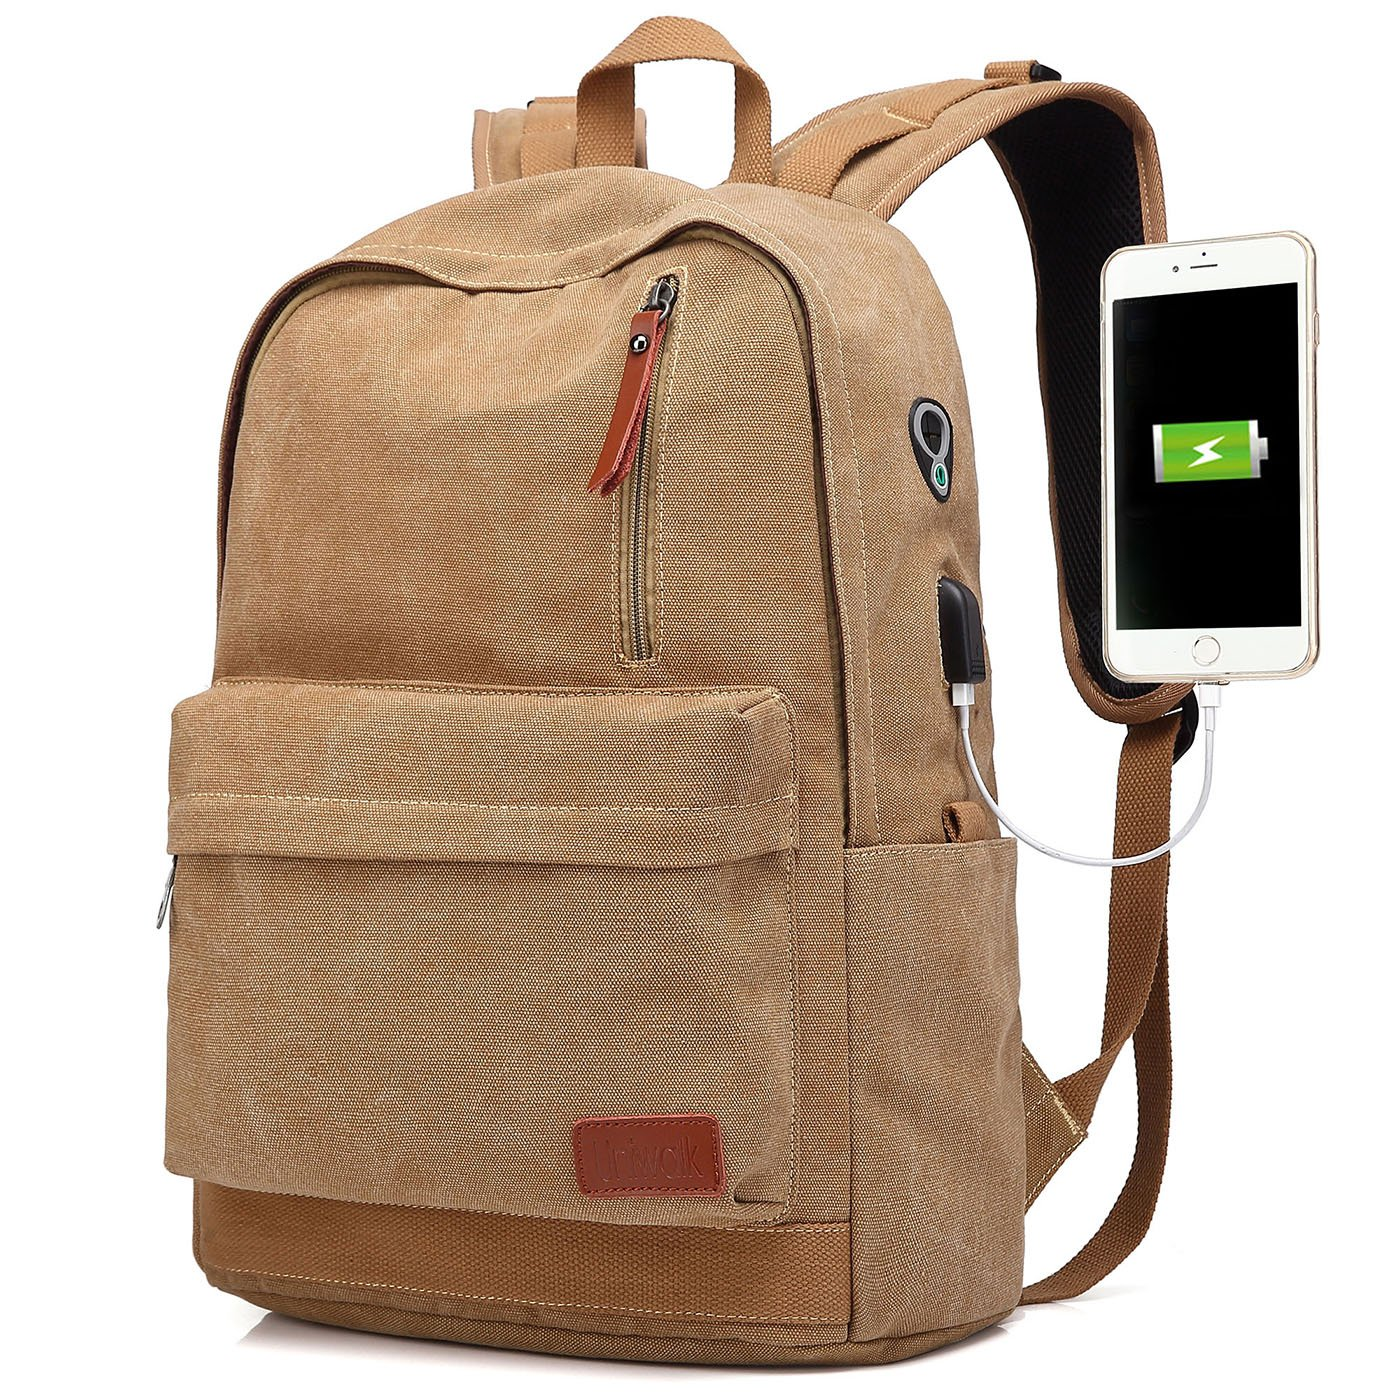 Canvas Laptop Backpack, Waterproof School Backpack With USB Charging Port For Men Women, Lightweight Anti-theft Travel Daypack College Student Rucksack Fits up to 15.6 inch Computer (Brown)